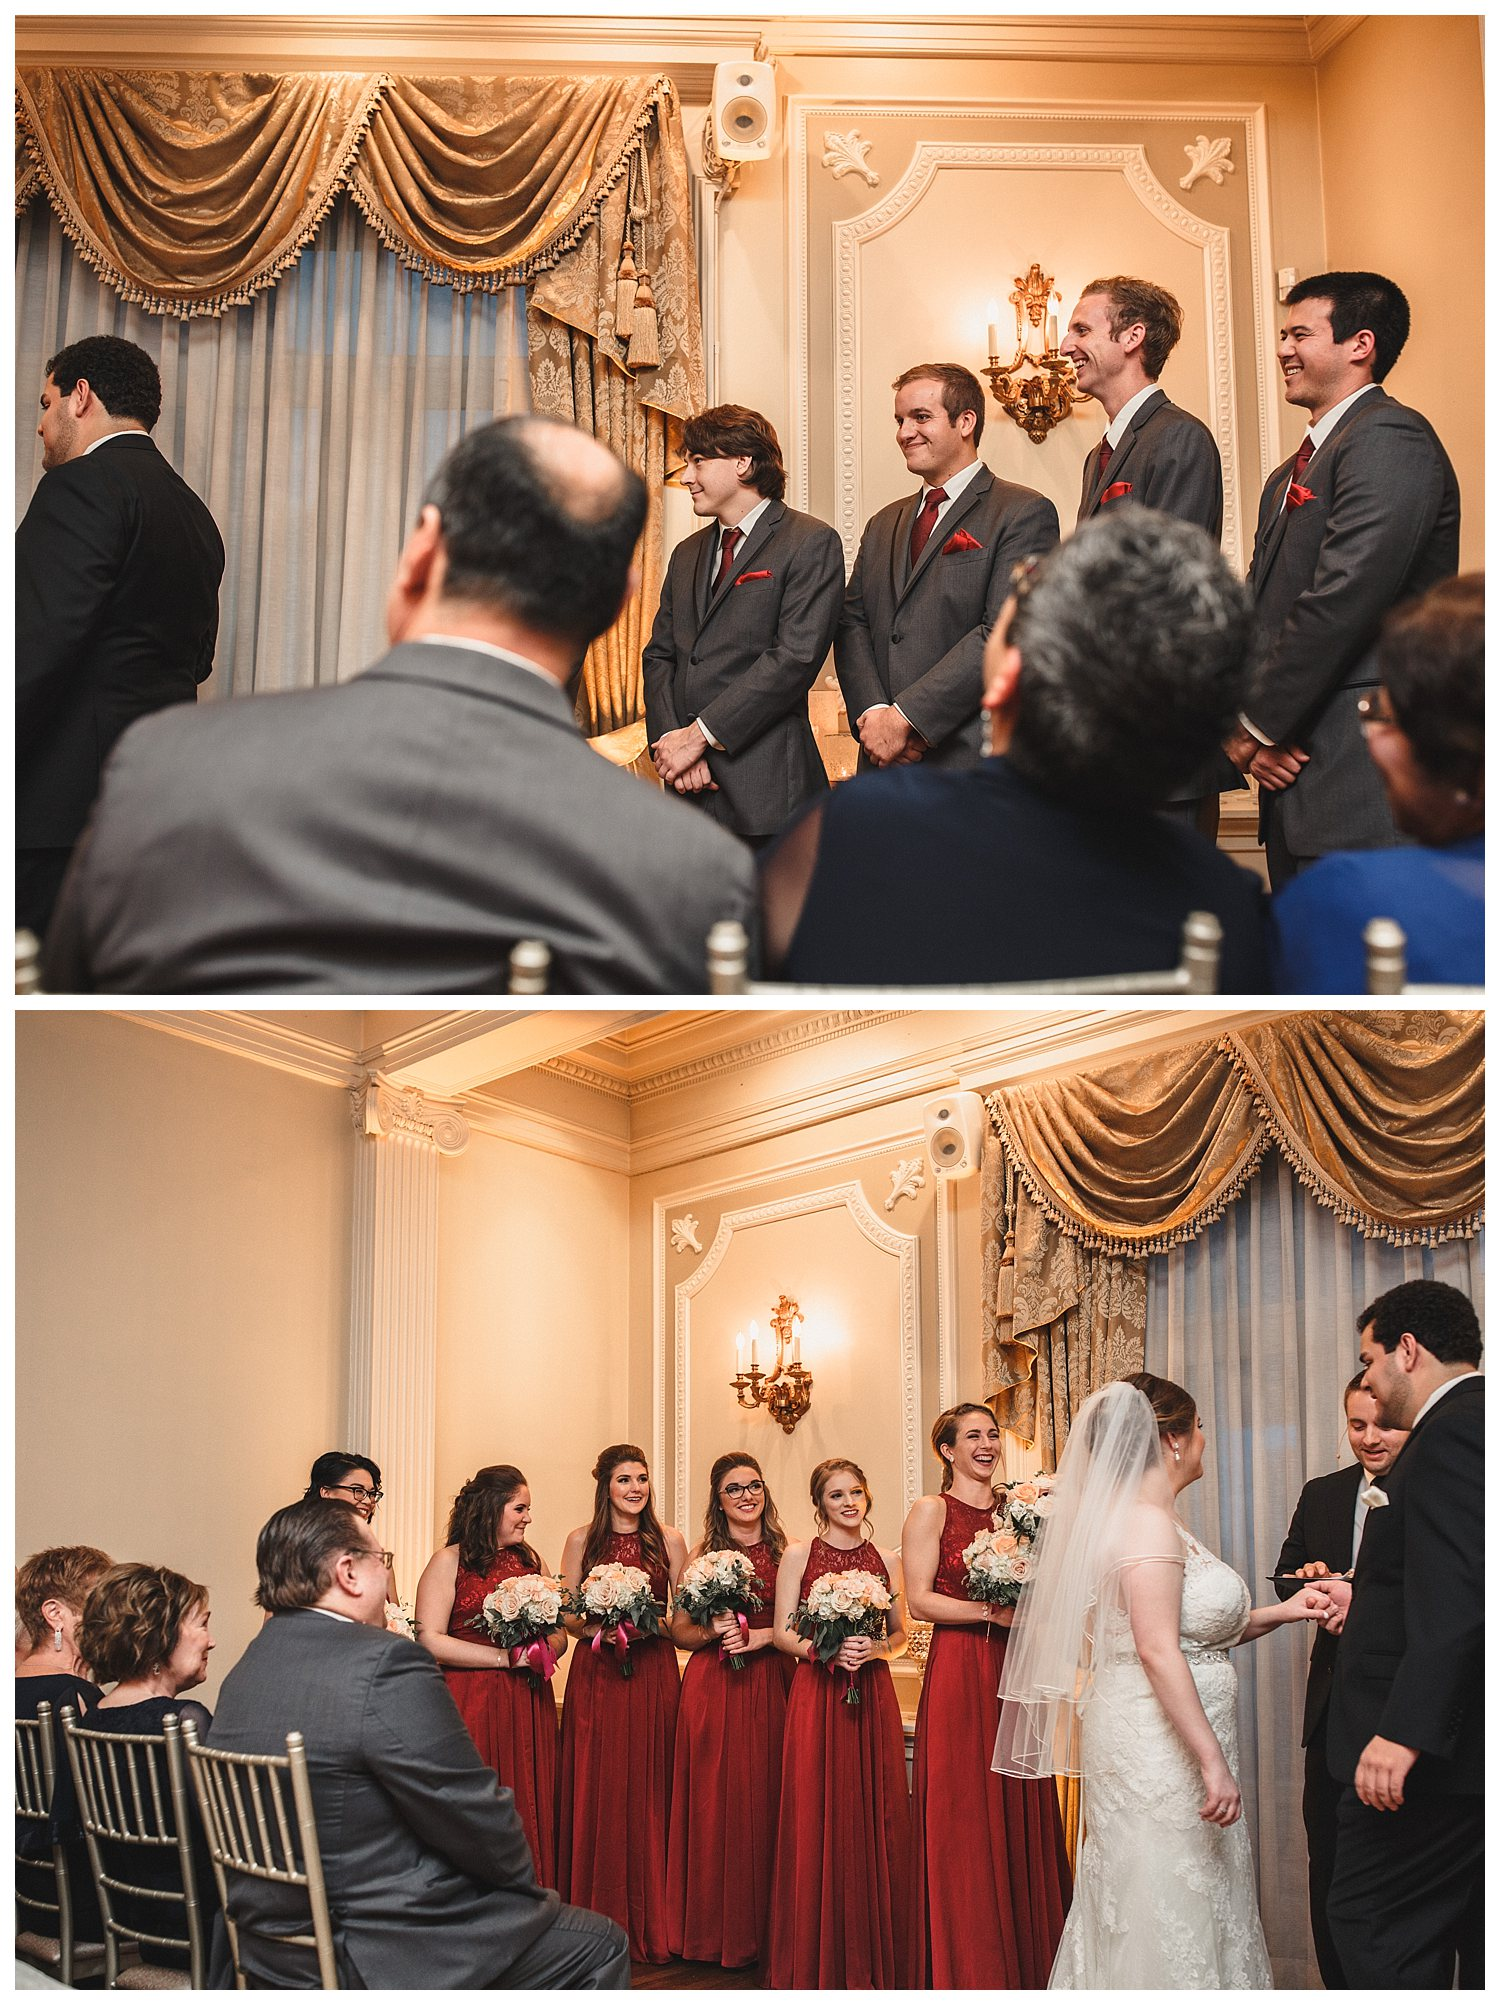 Kelsey_Diane_Photography_Loose_Mansion_Wedding_Photography_Kansas_City_Victor_Lyndsay_0147.jpg